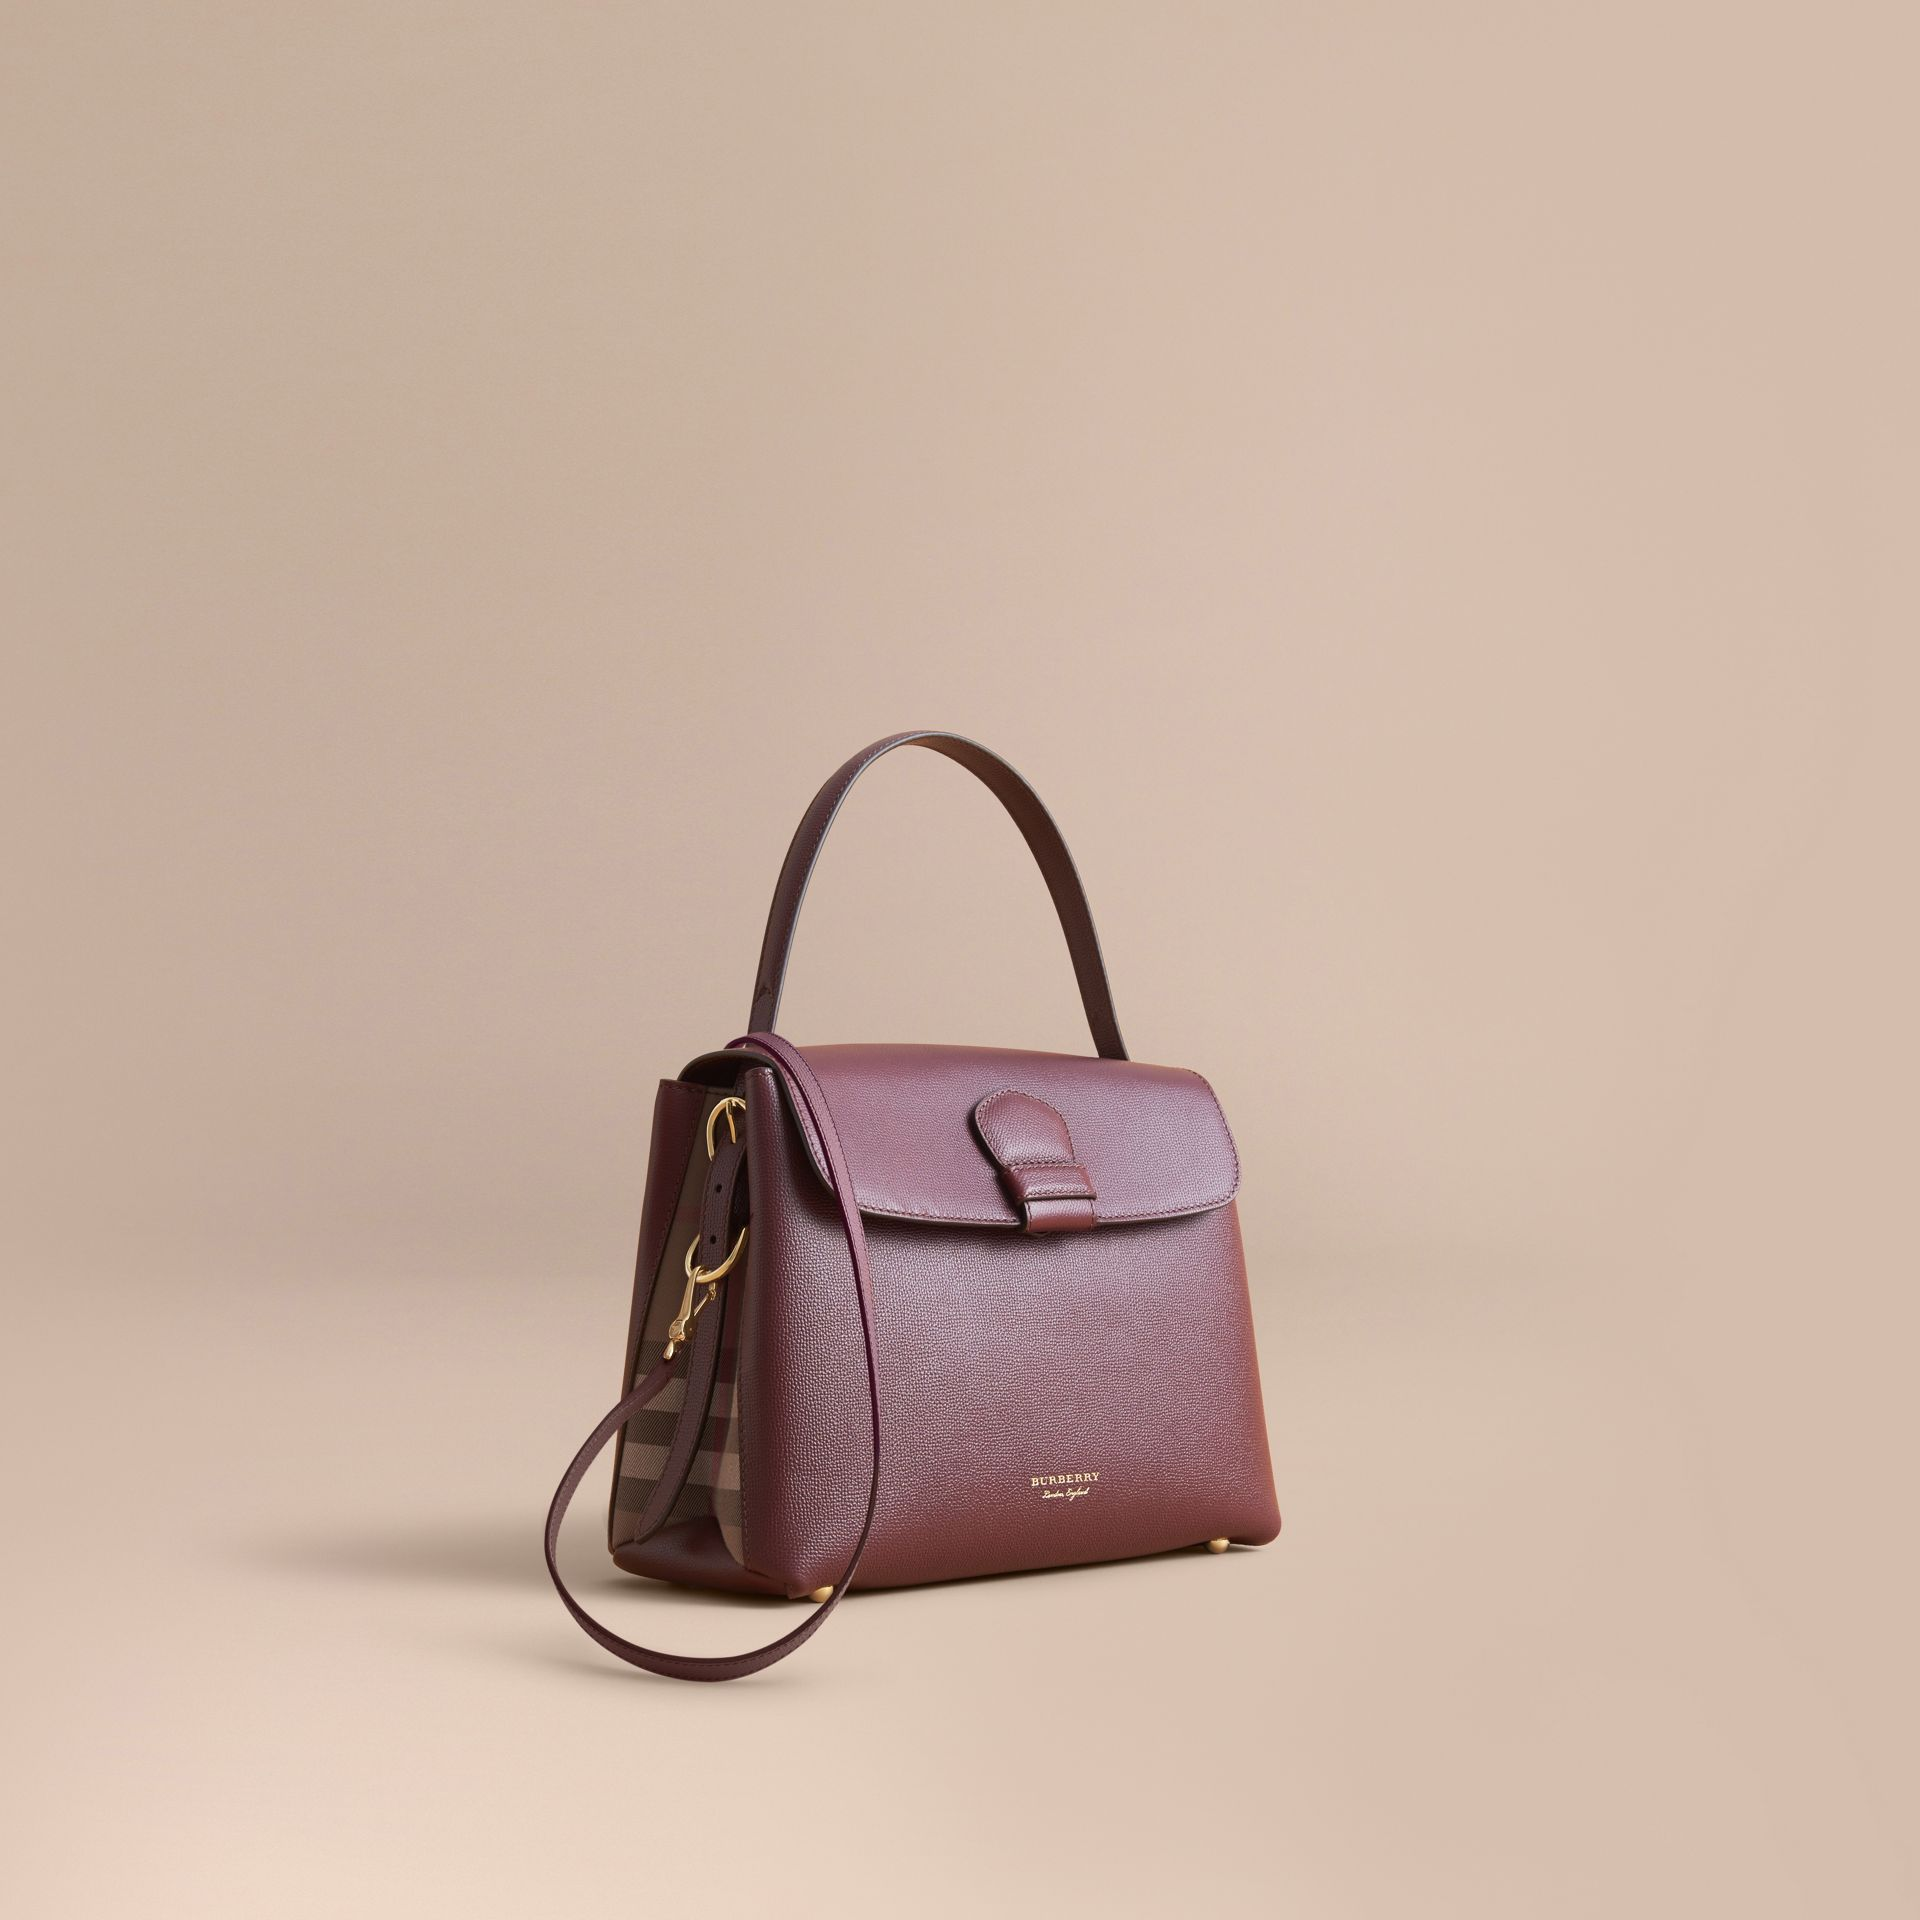 Medium Grainy Leather and House Check Tote Bag in Mahogany Red - Women | Burberry - gallery image 1